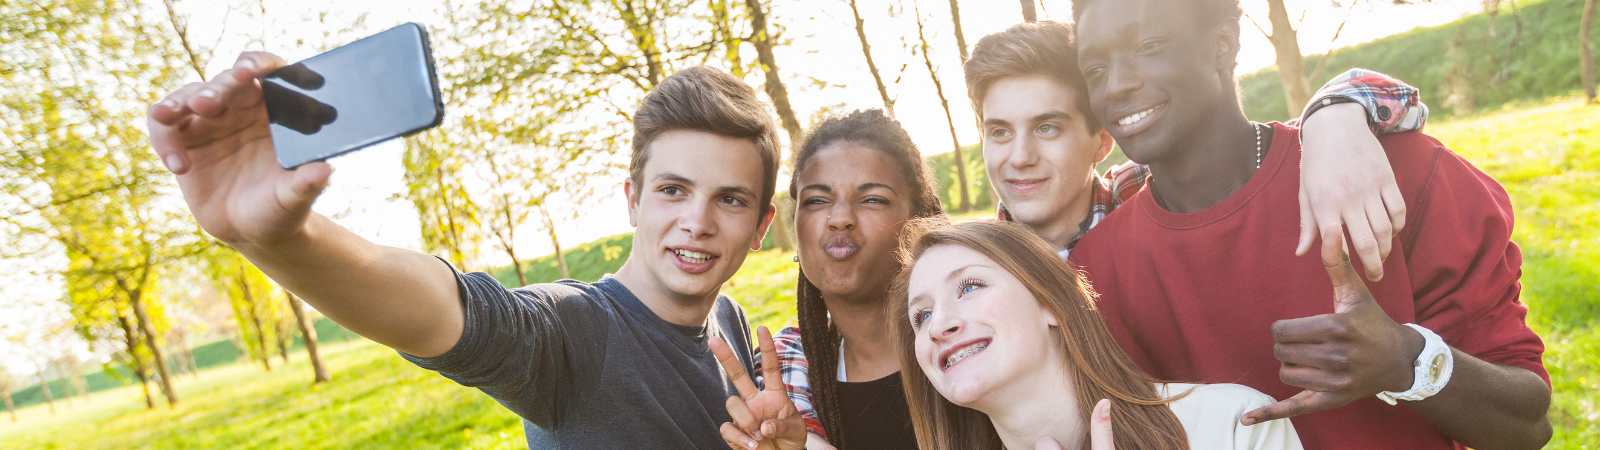 Teenagers in a row taking a selfie as a promotion for online class on teenage brain